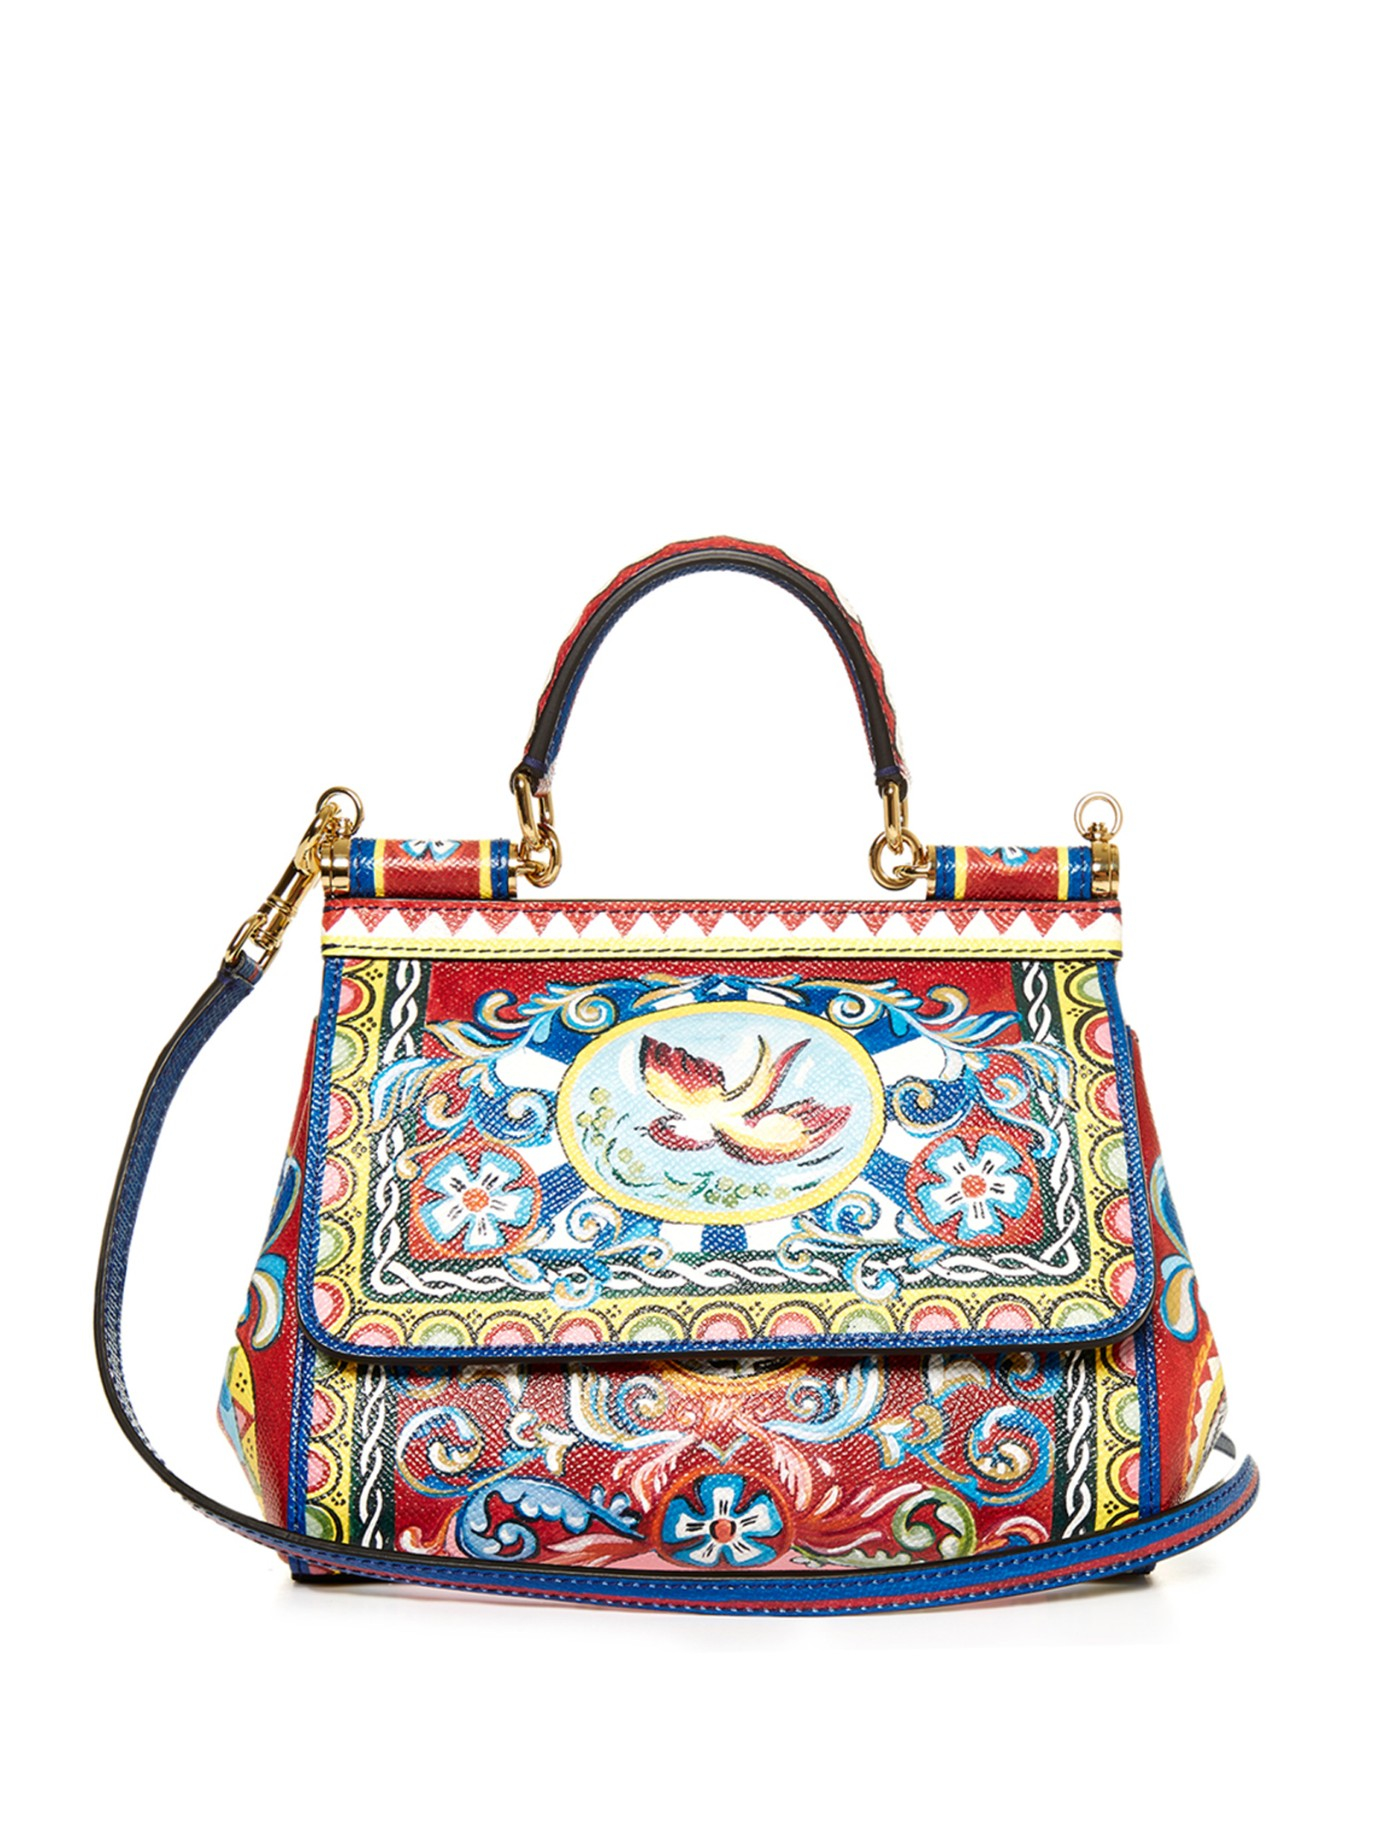 2f0ccf525b3d Dolce   Gabbana Sicily Small Carretto-Print Shoulder Bag in Red - Lyst